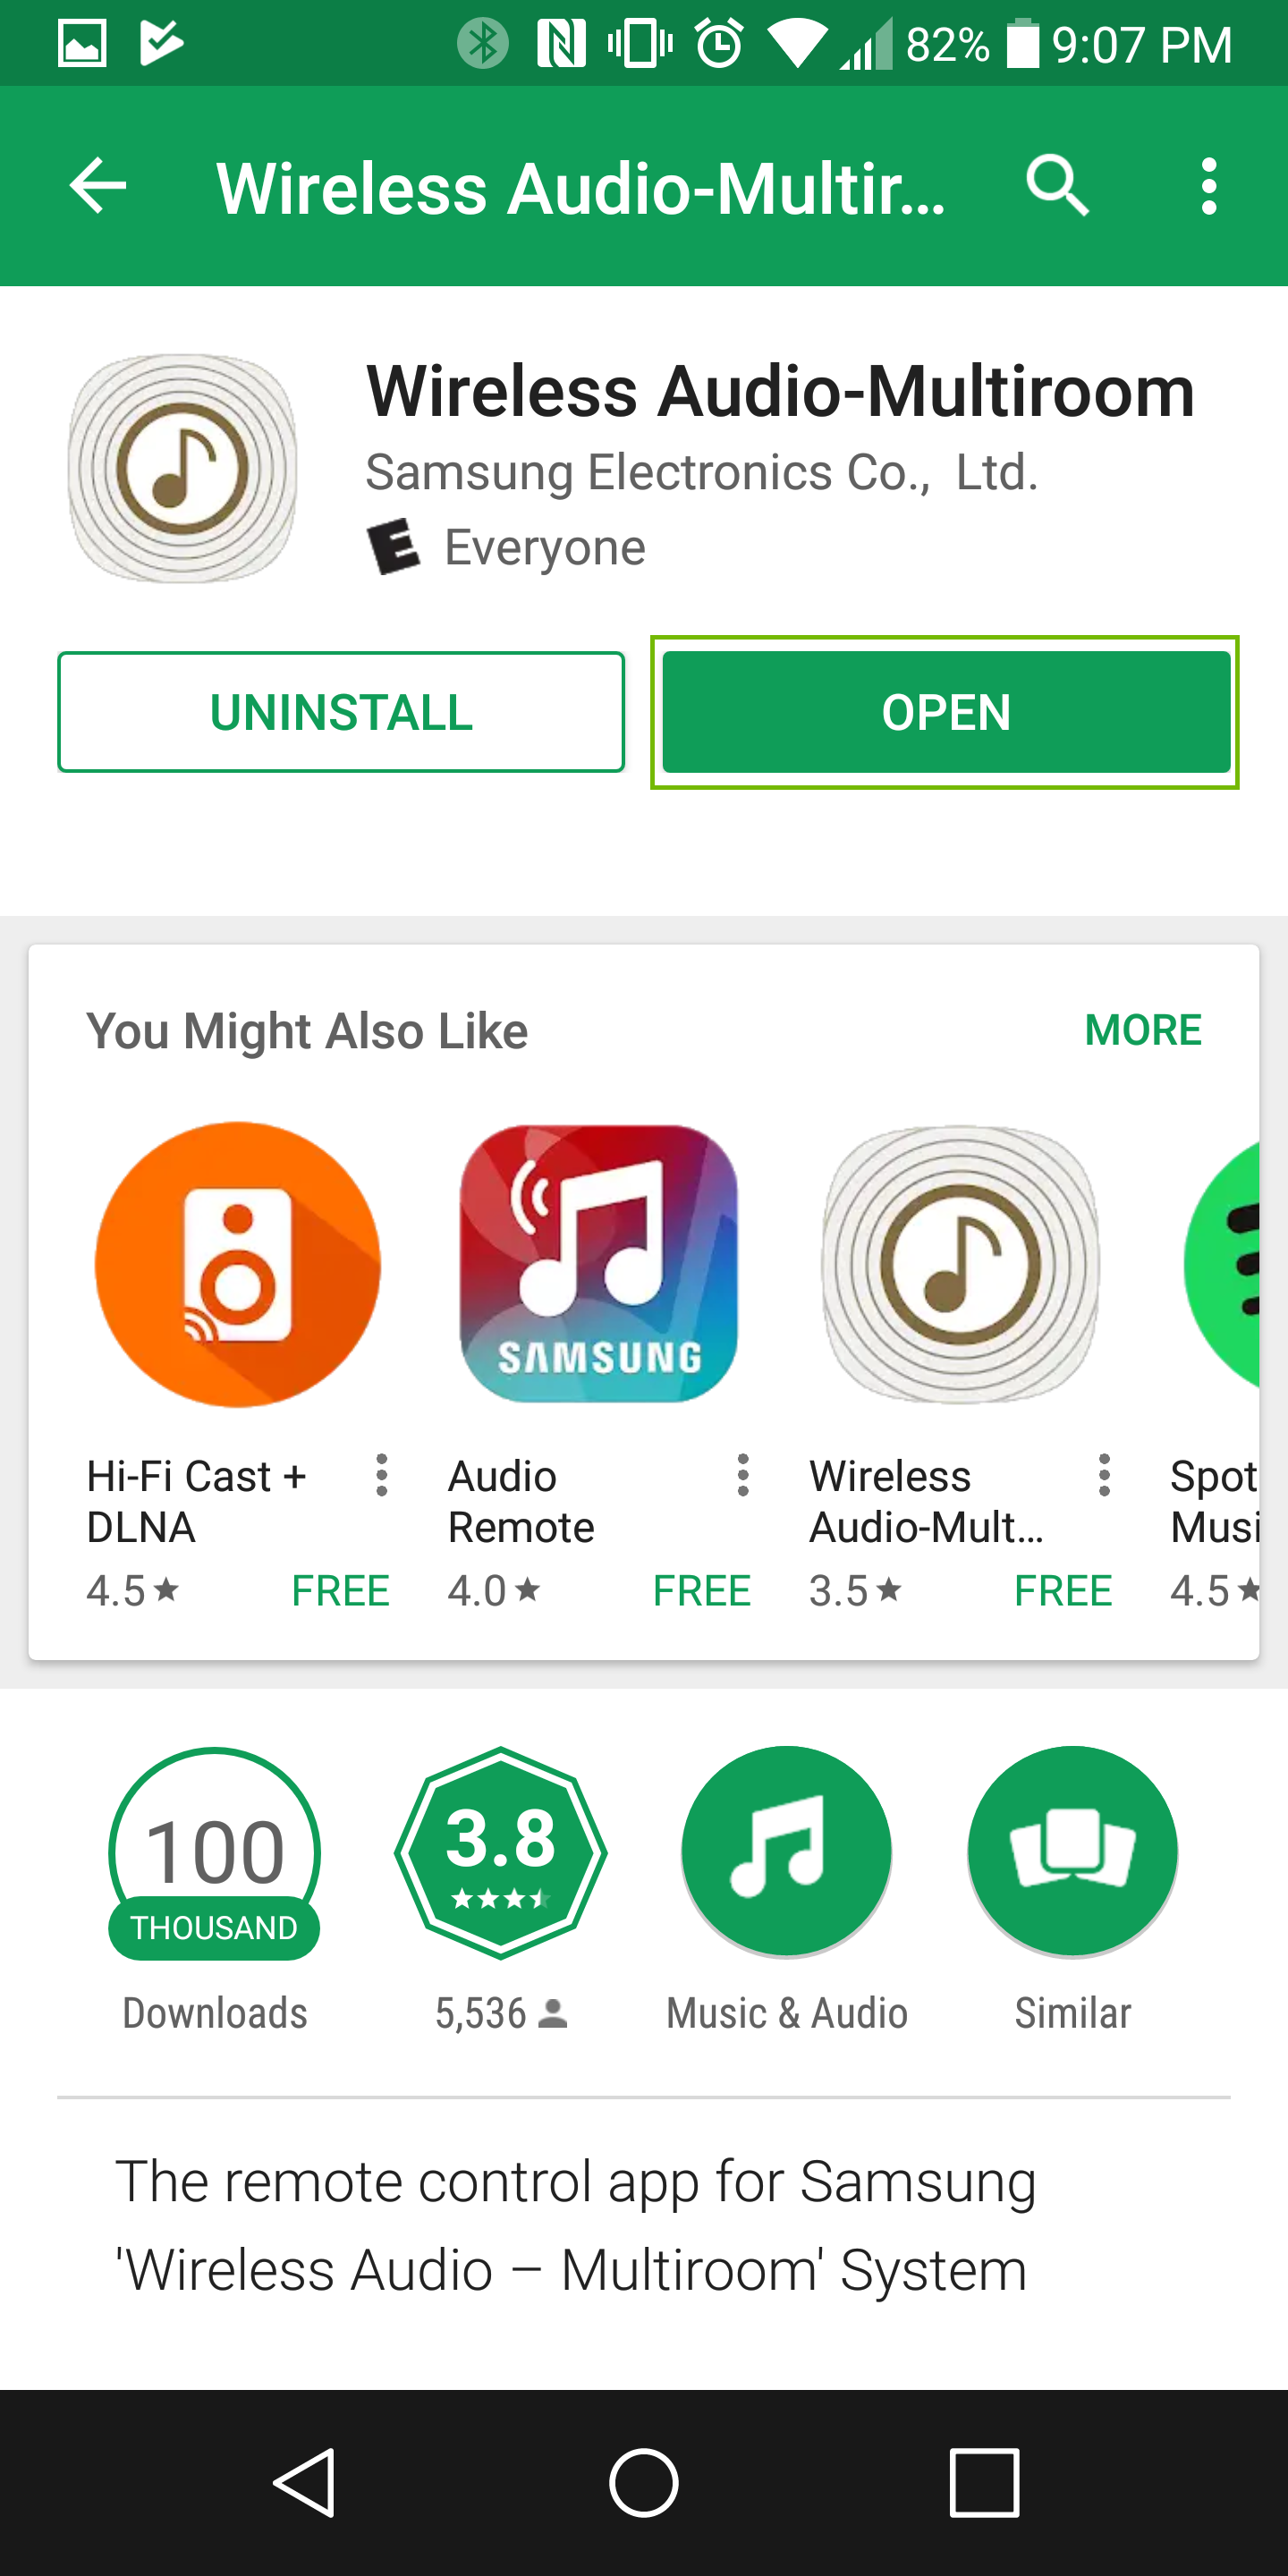 app store page with open highlighted